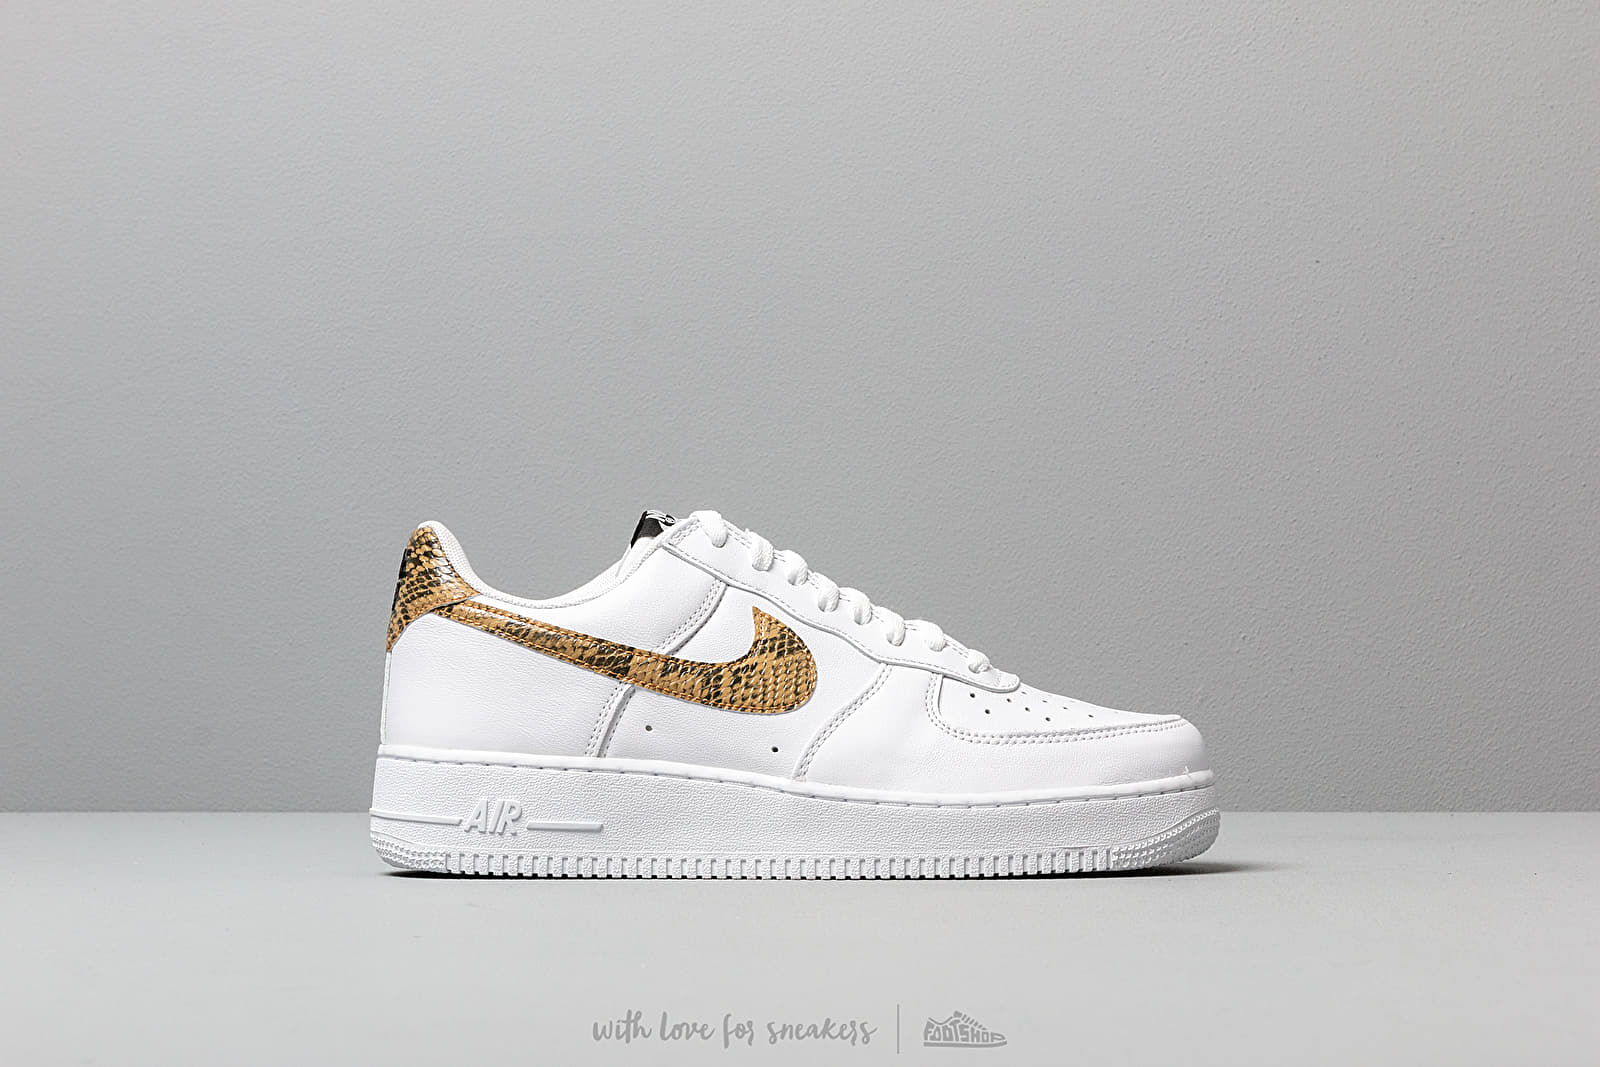 Nike Air Force 1 Low Retro Premium QS White Elemental Gold